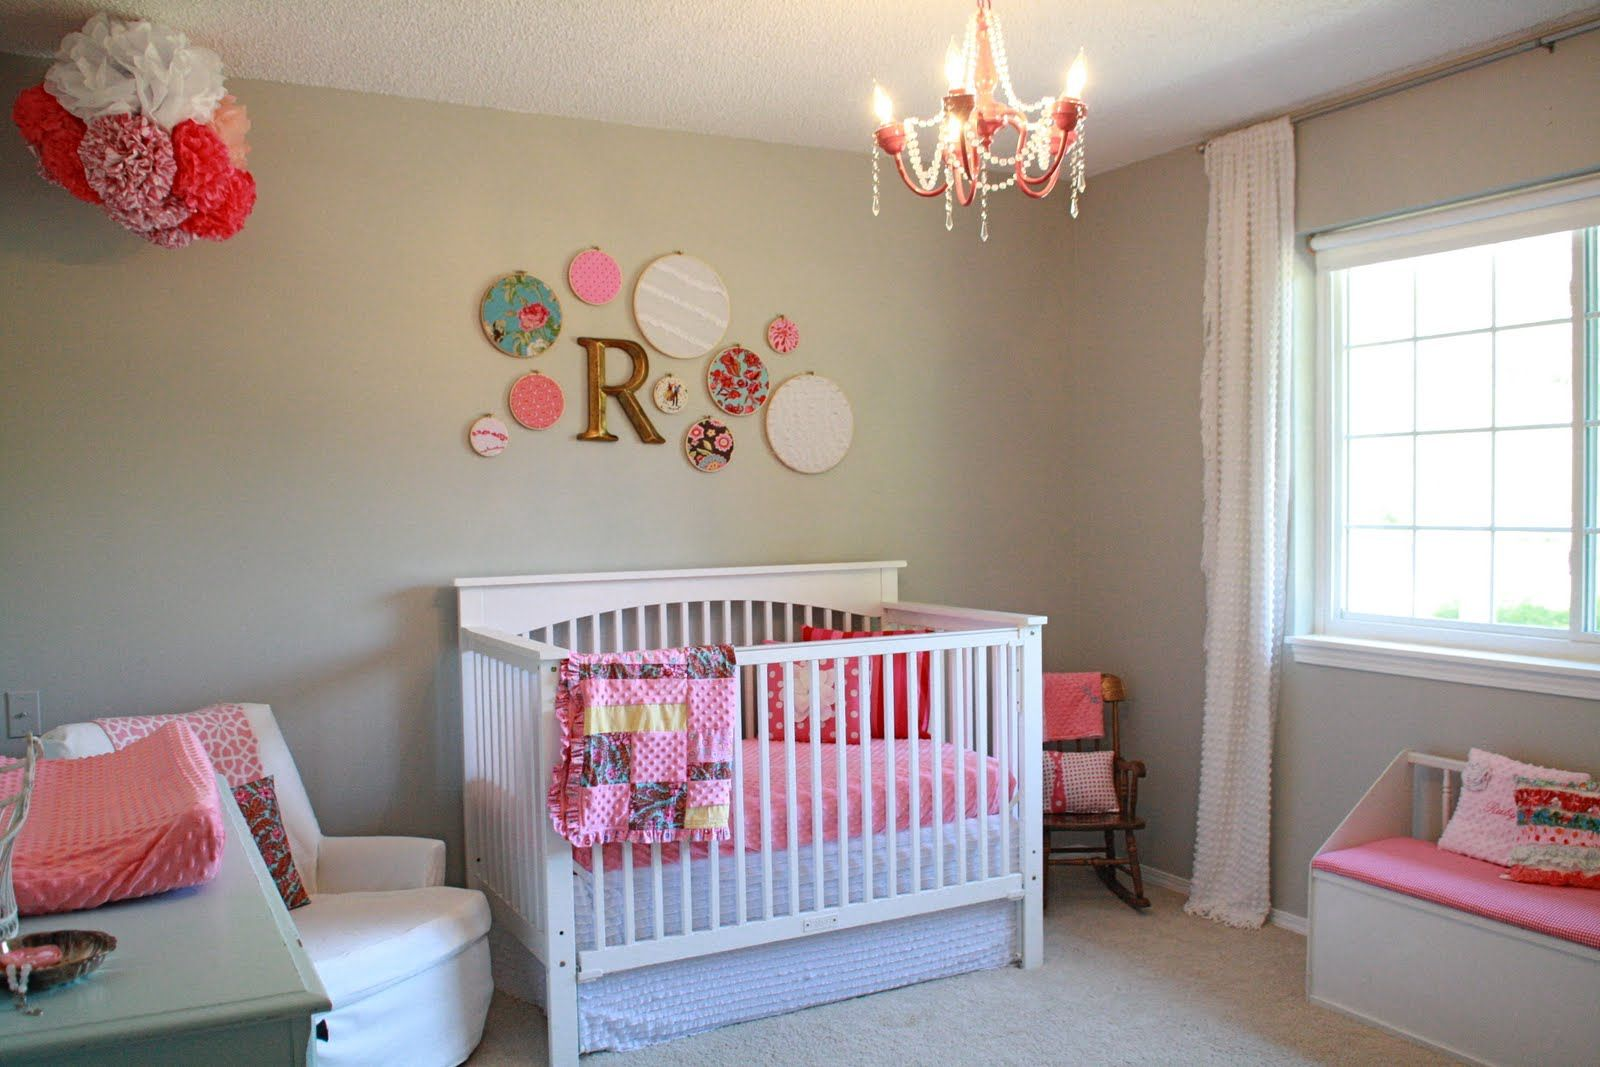 Nursery Decorating Ideas On A Budget Top Rated Interior Paint Check More At Http Mindlessarel